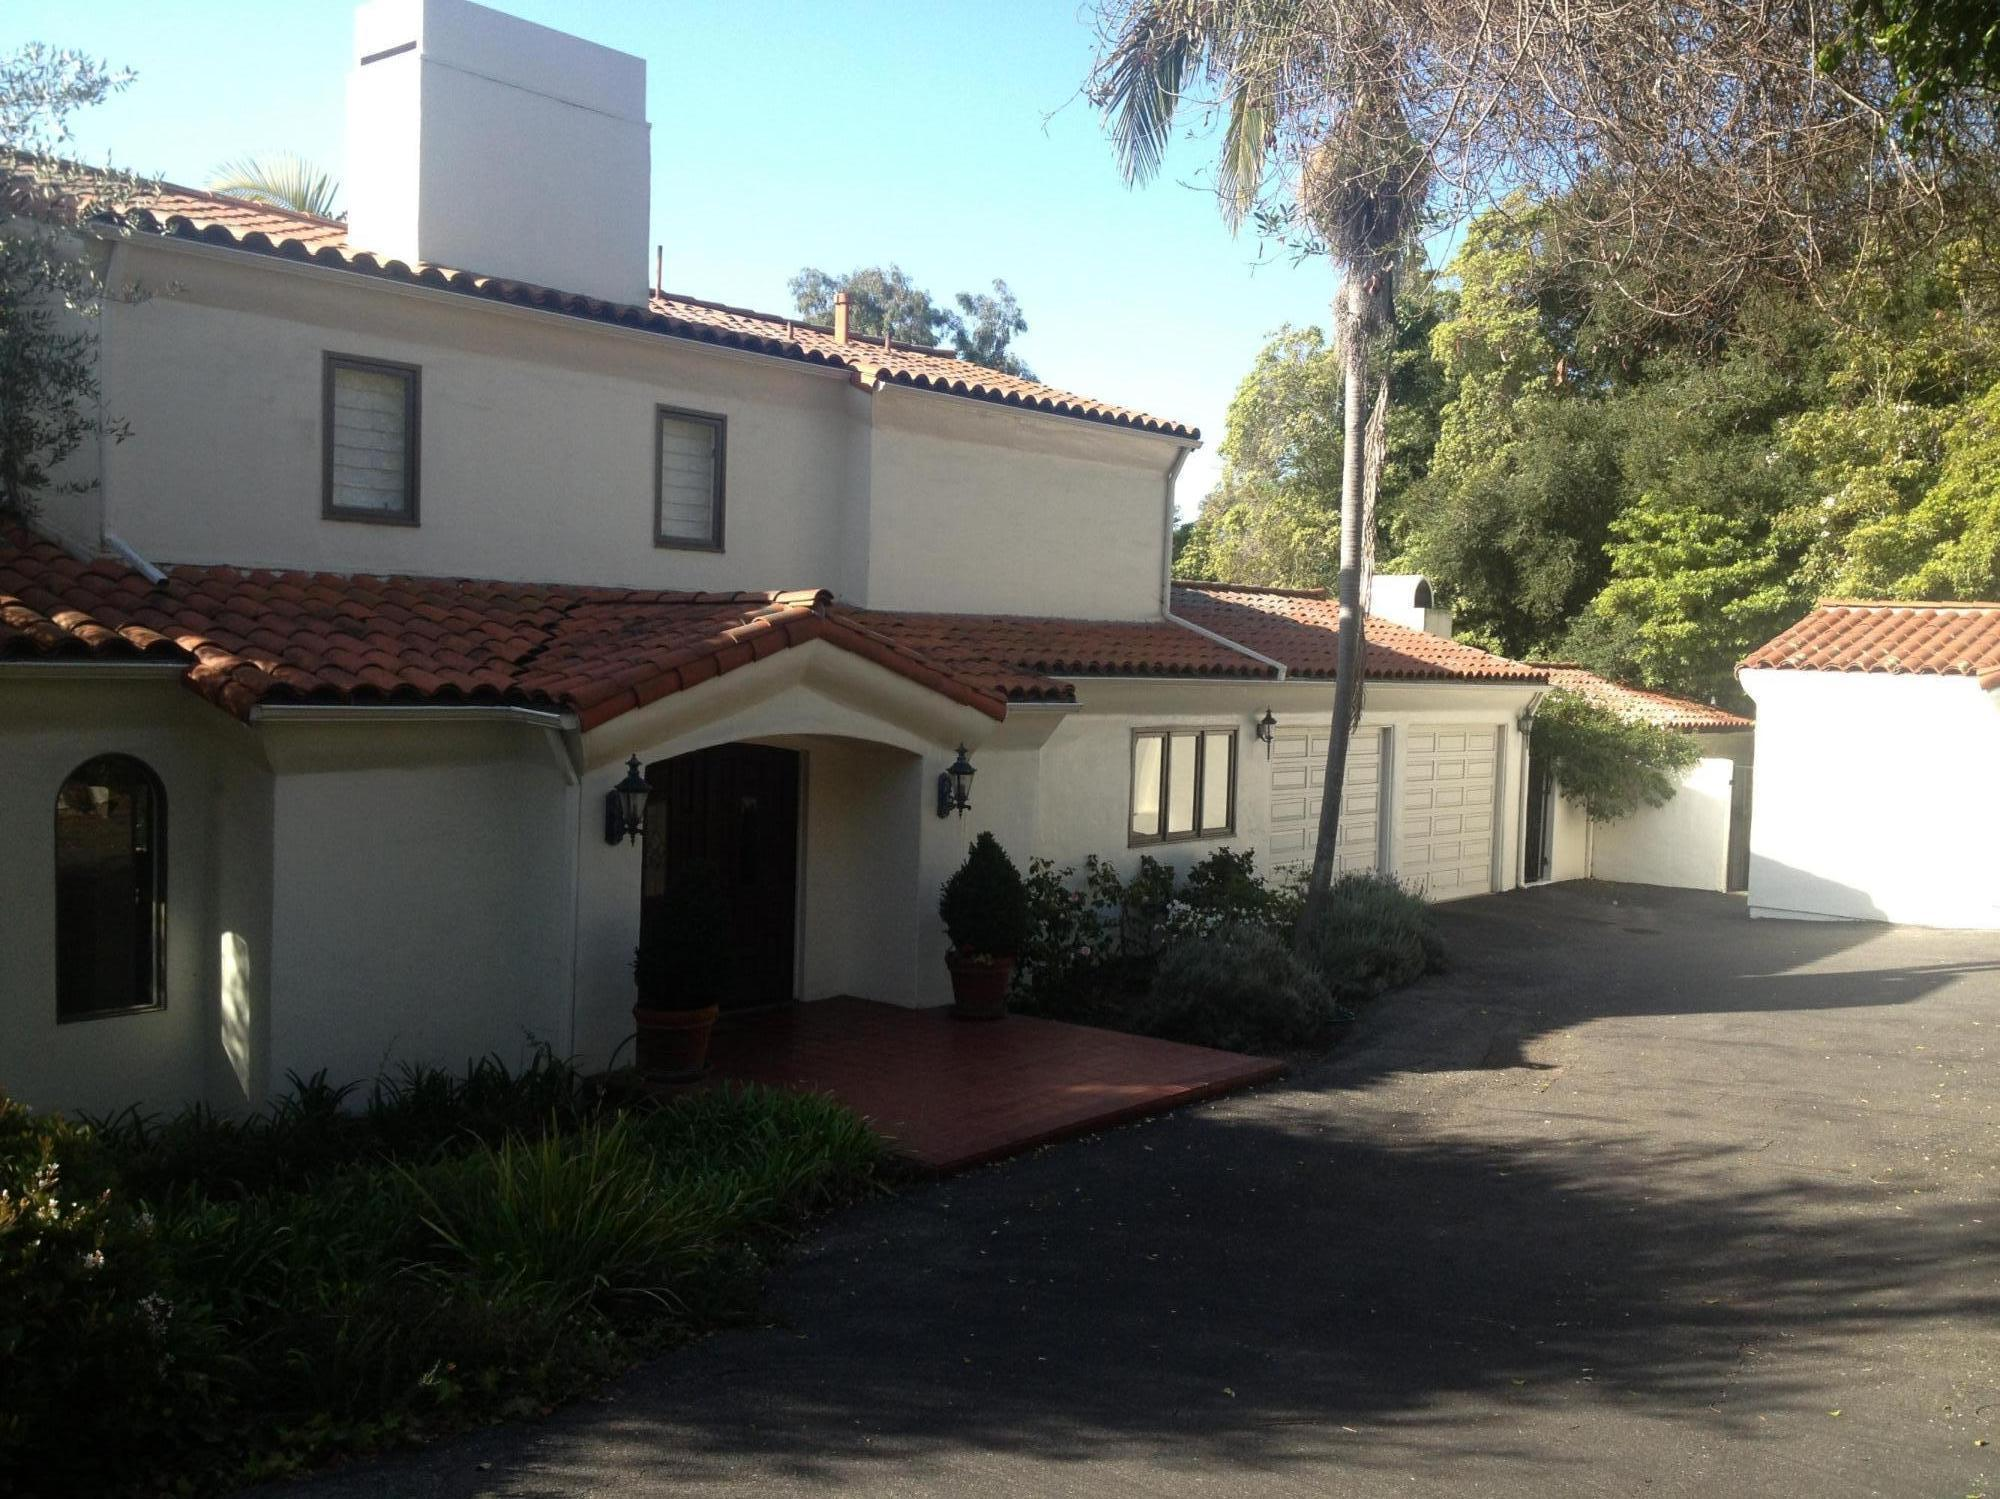 Property photo for 1151 Glenview Rd Montecito, California 93108 - 14-489